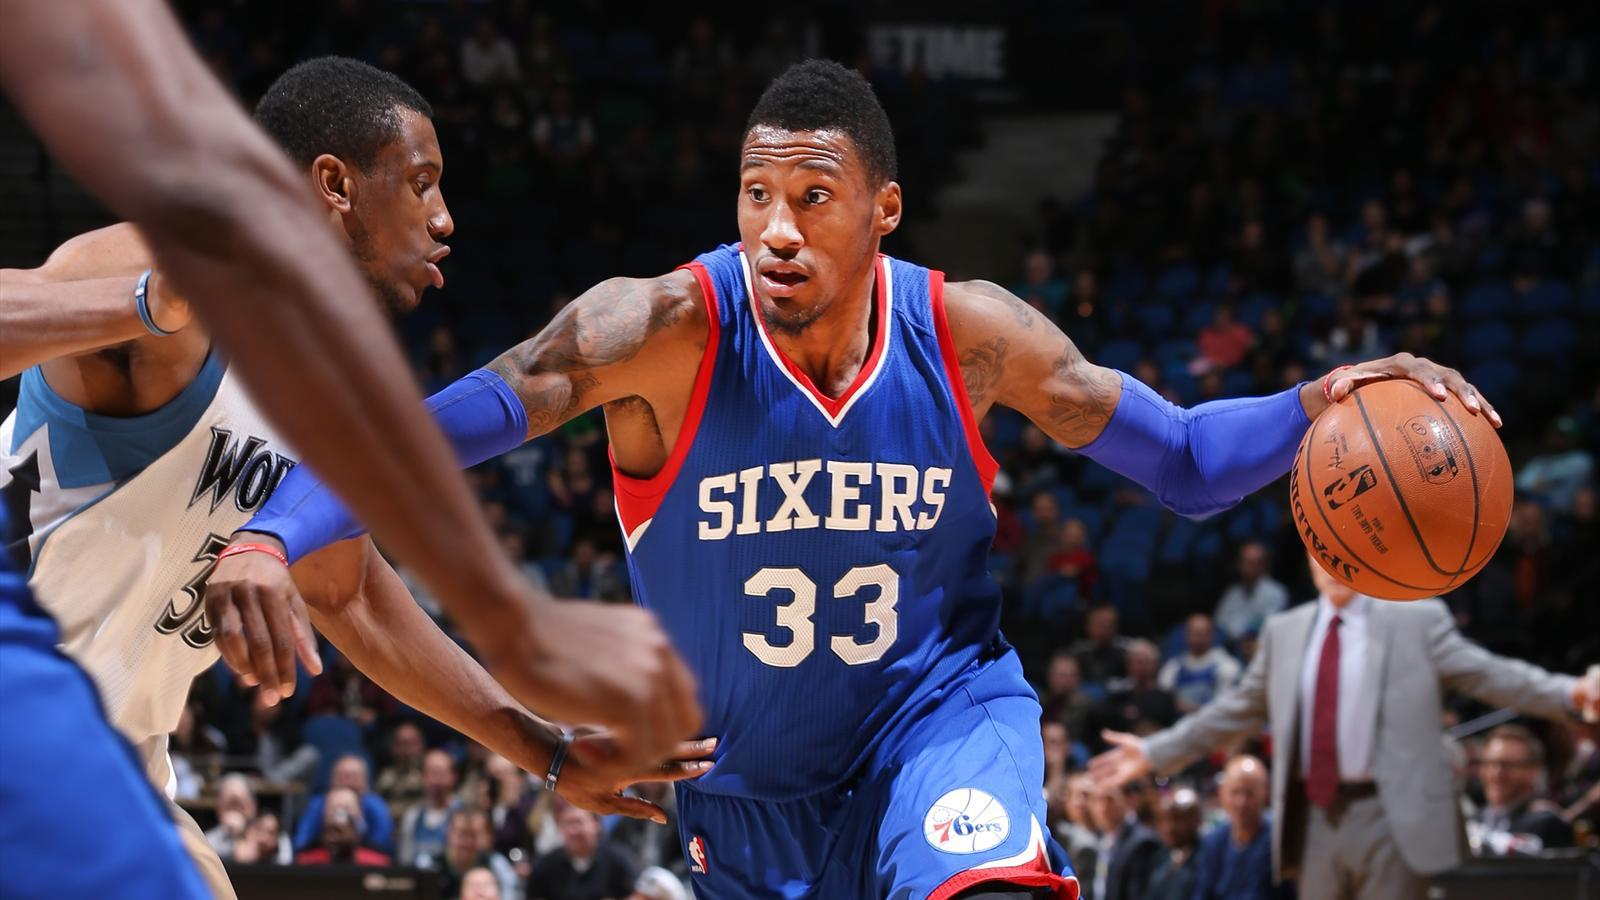 SIXERS' BIG SHOT ROB COVINGTON OUT TWO WEEKS - Fast Philly Sports